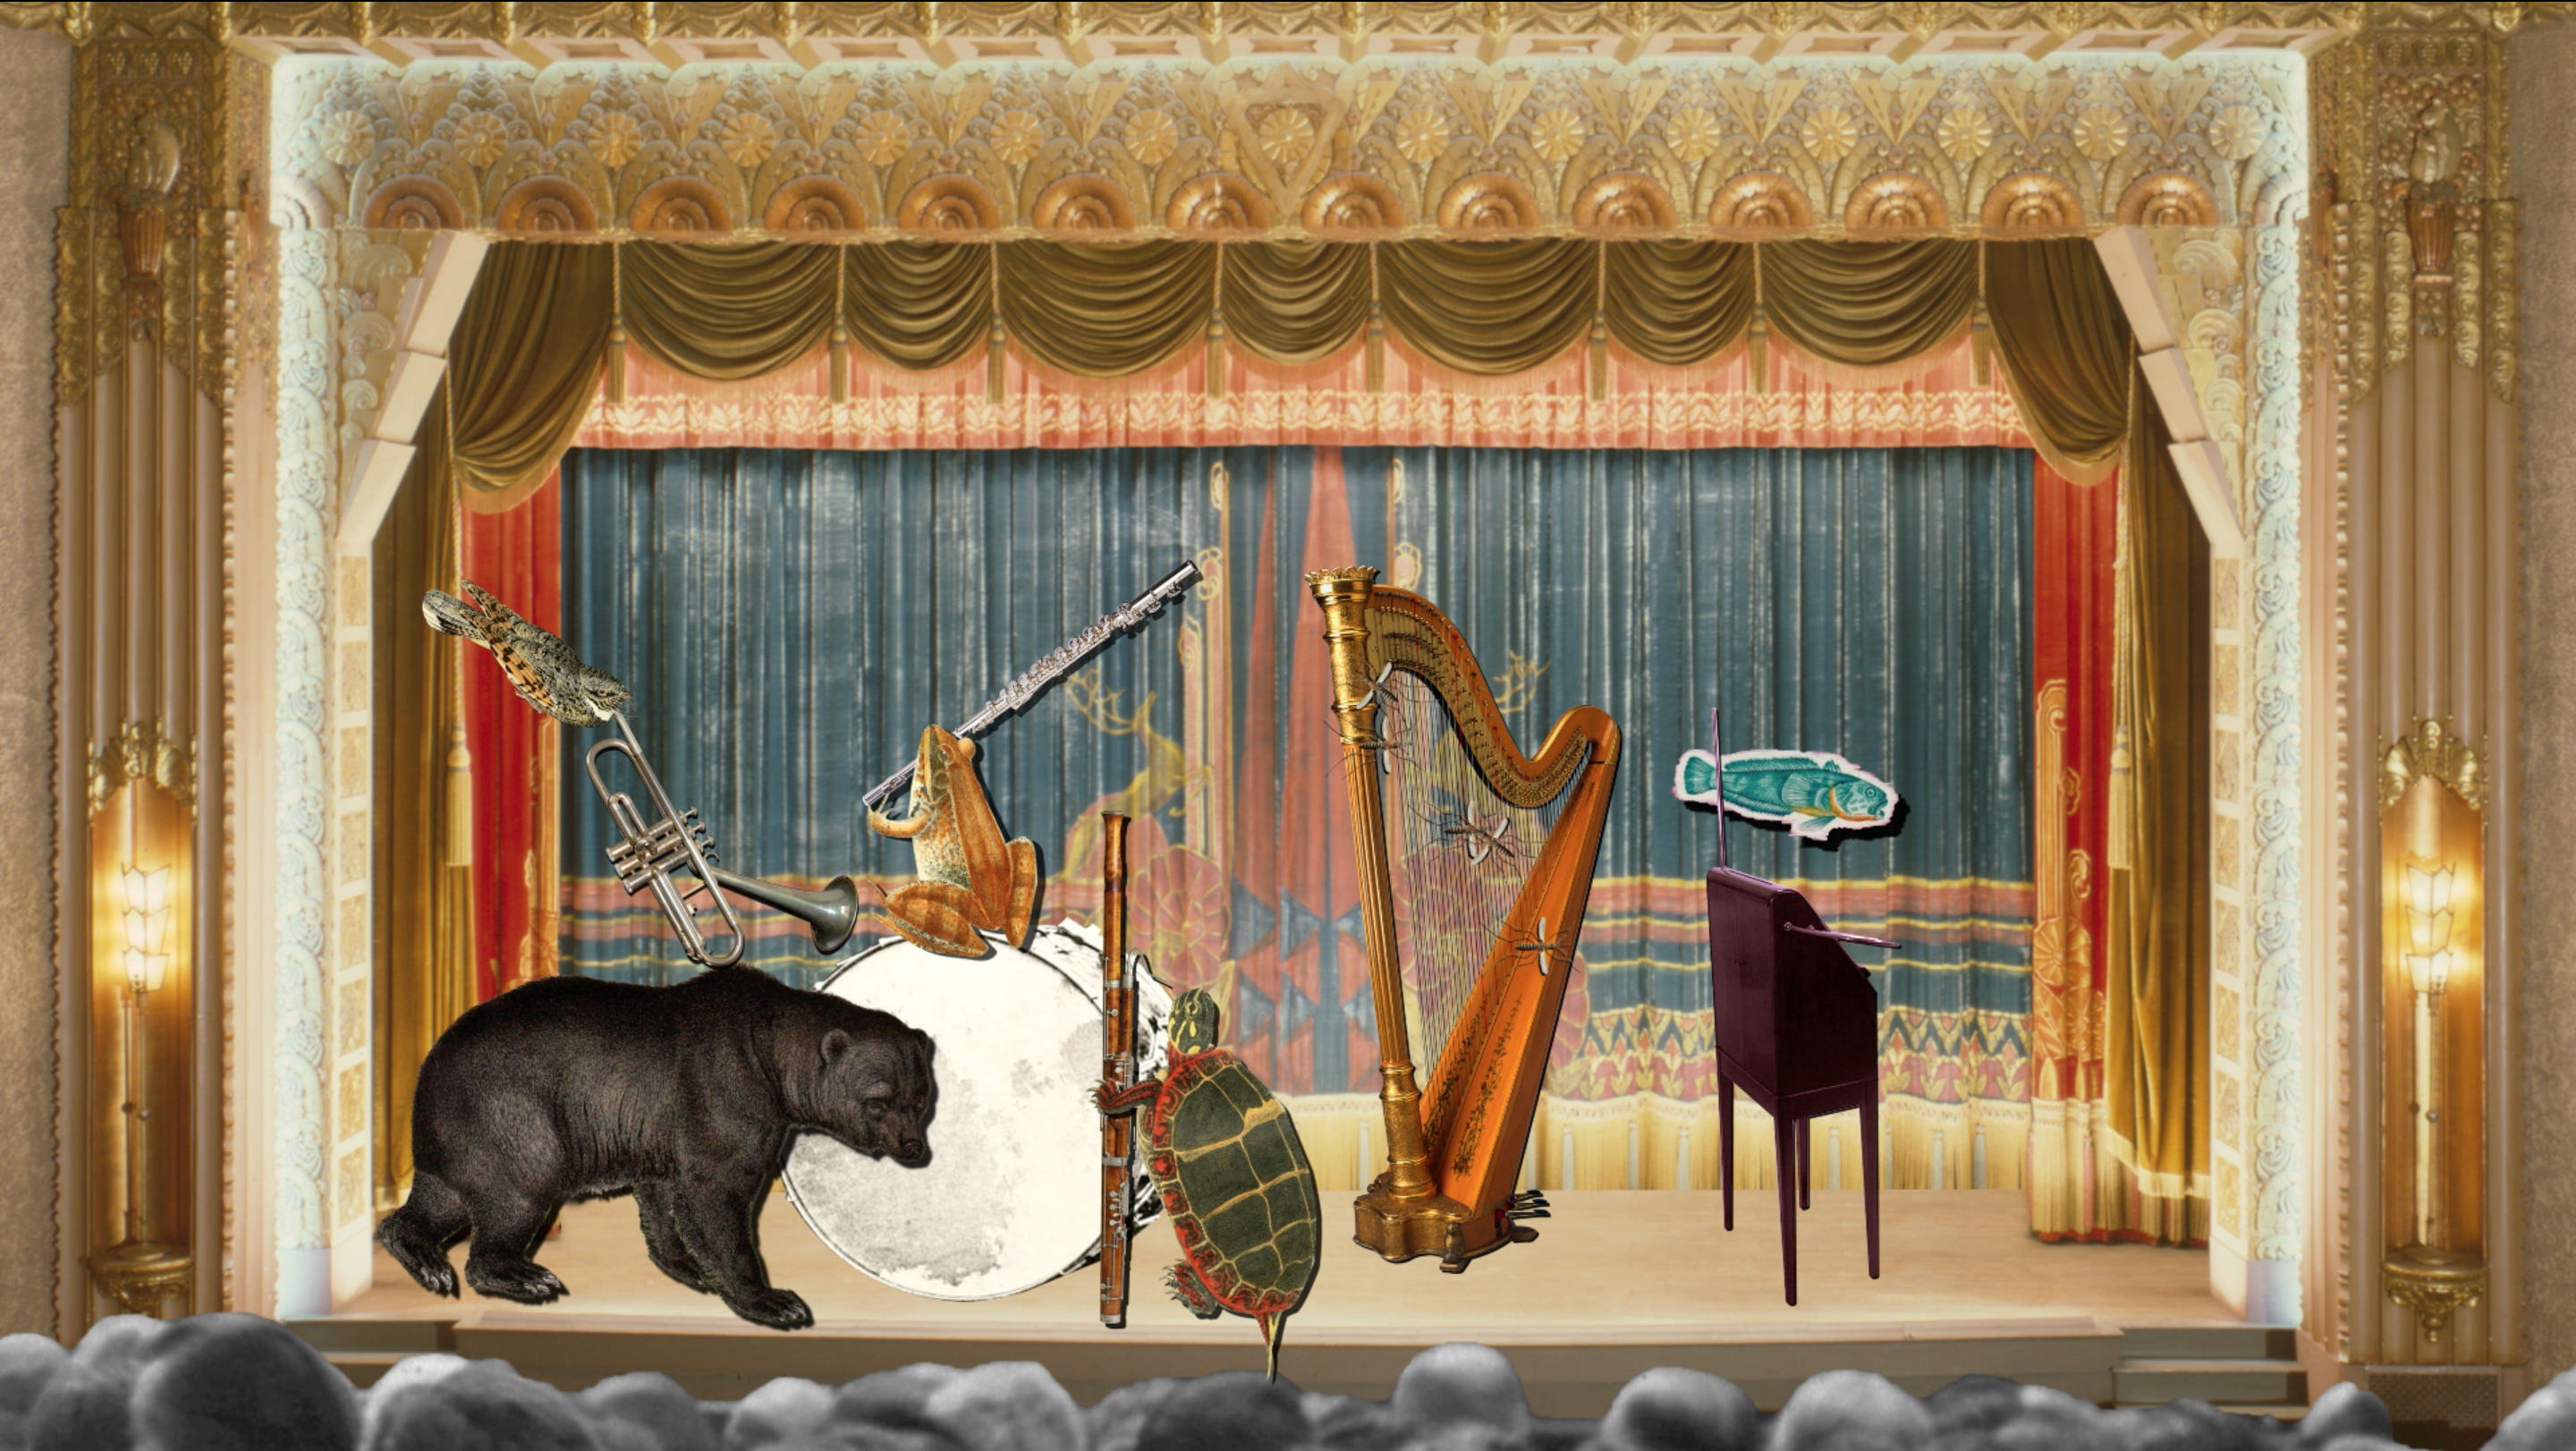 What if hibernating animals formed an orchestra and performed a symphony about their winter's sleep?